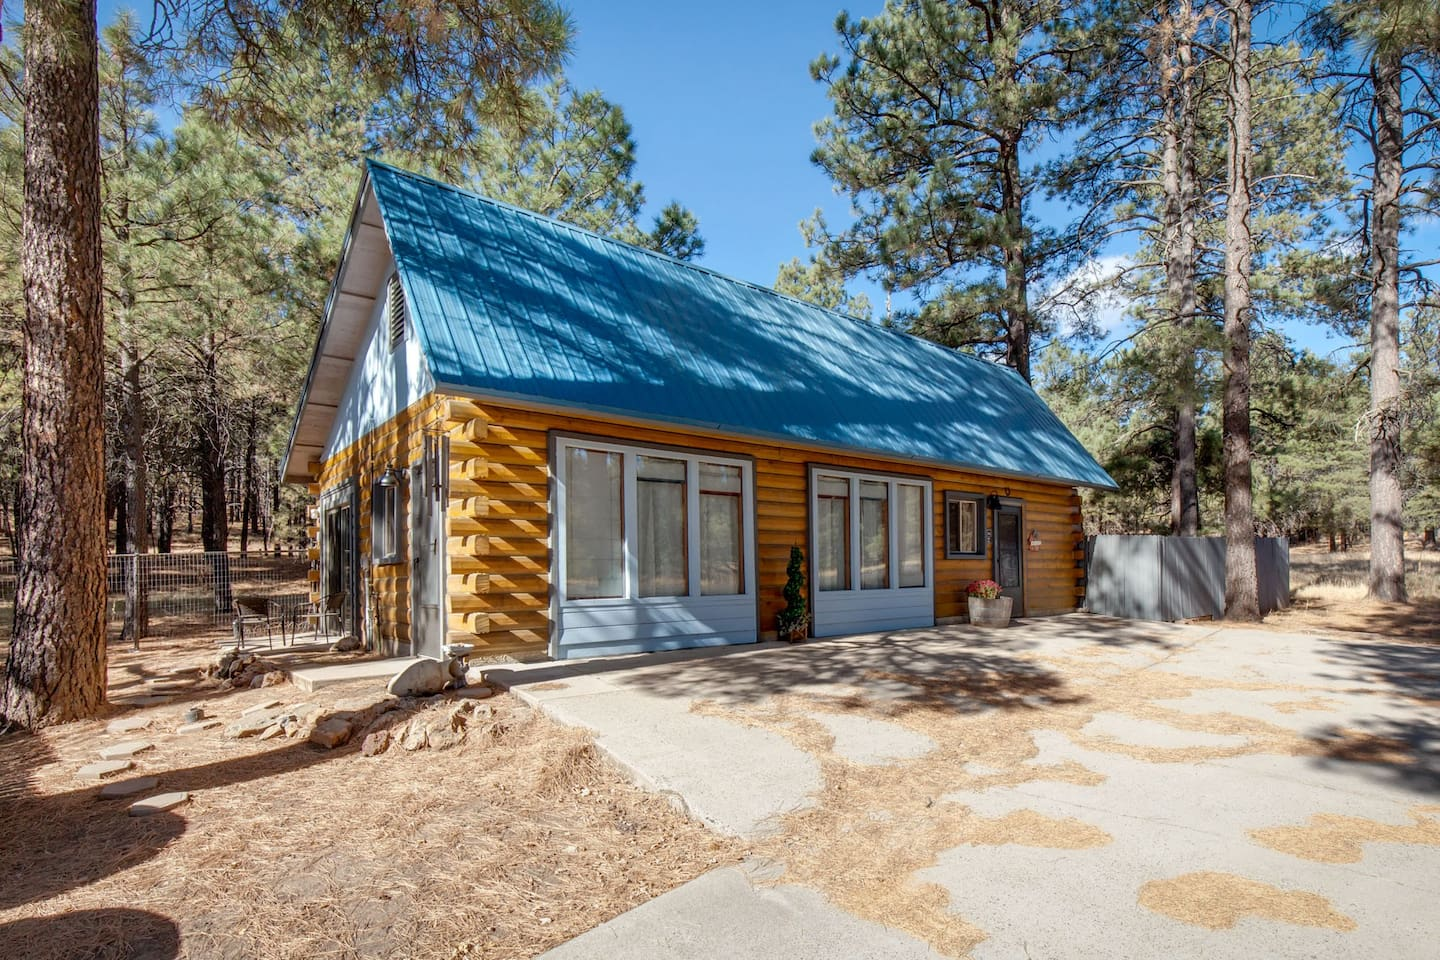 deck mountain flagstaff rentals show white cabins low in pines cabin peaceful arizona